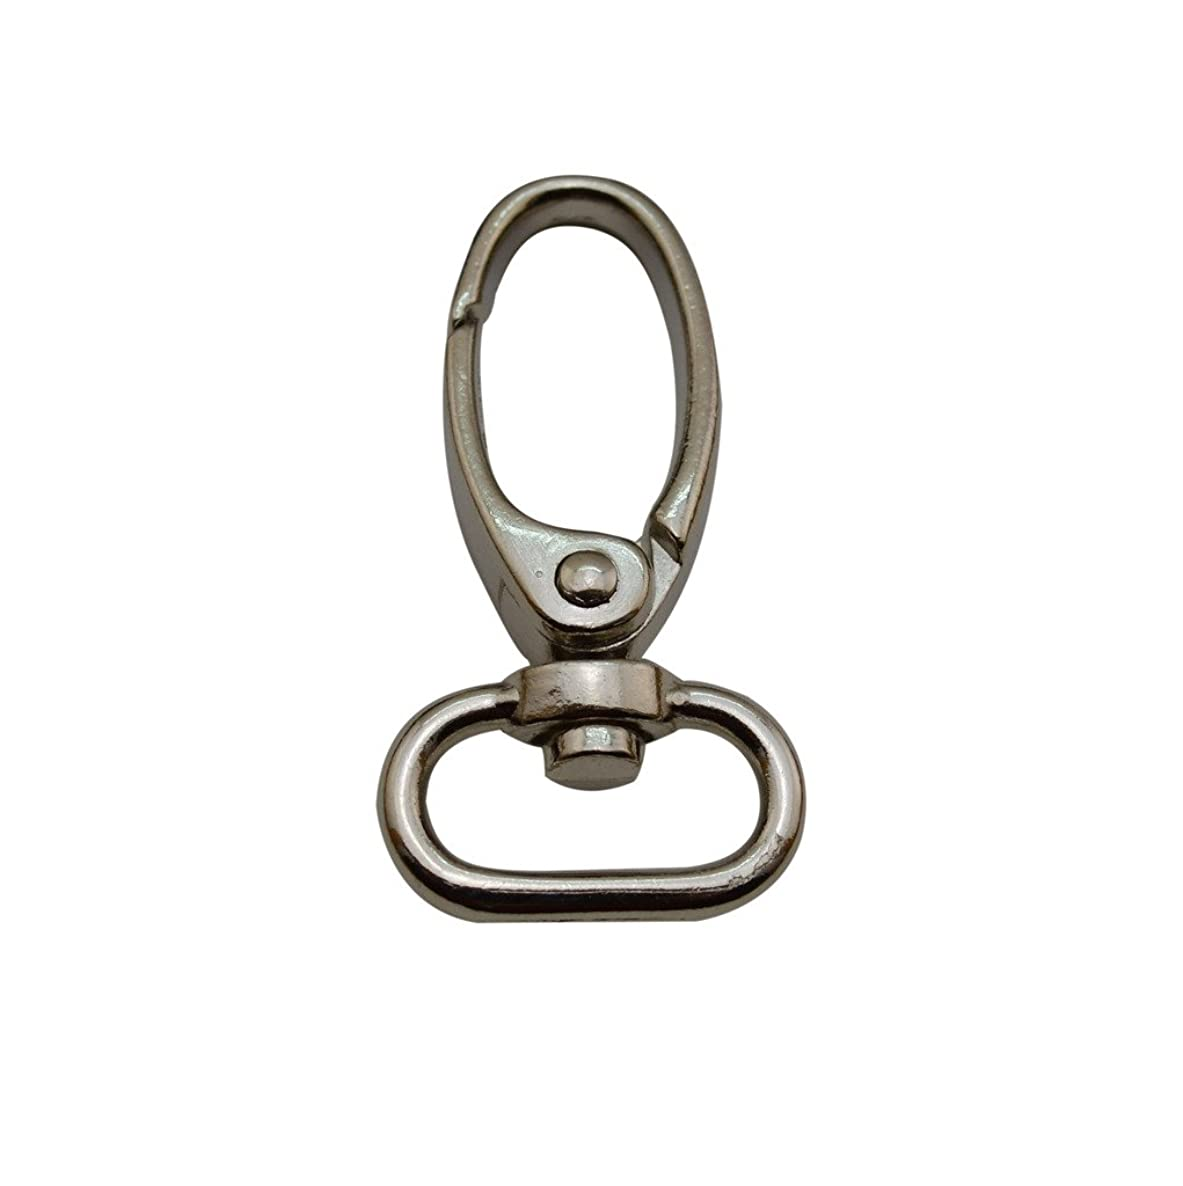 Ailisi Metal Silvery Olive Lobster Clasps 0.75 Inches Internal Diameter Oval Swivel Trigger Clips Hooks Pack of 10